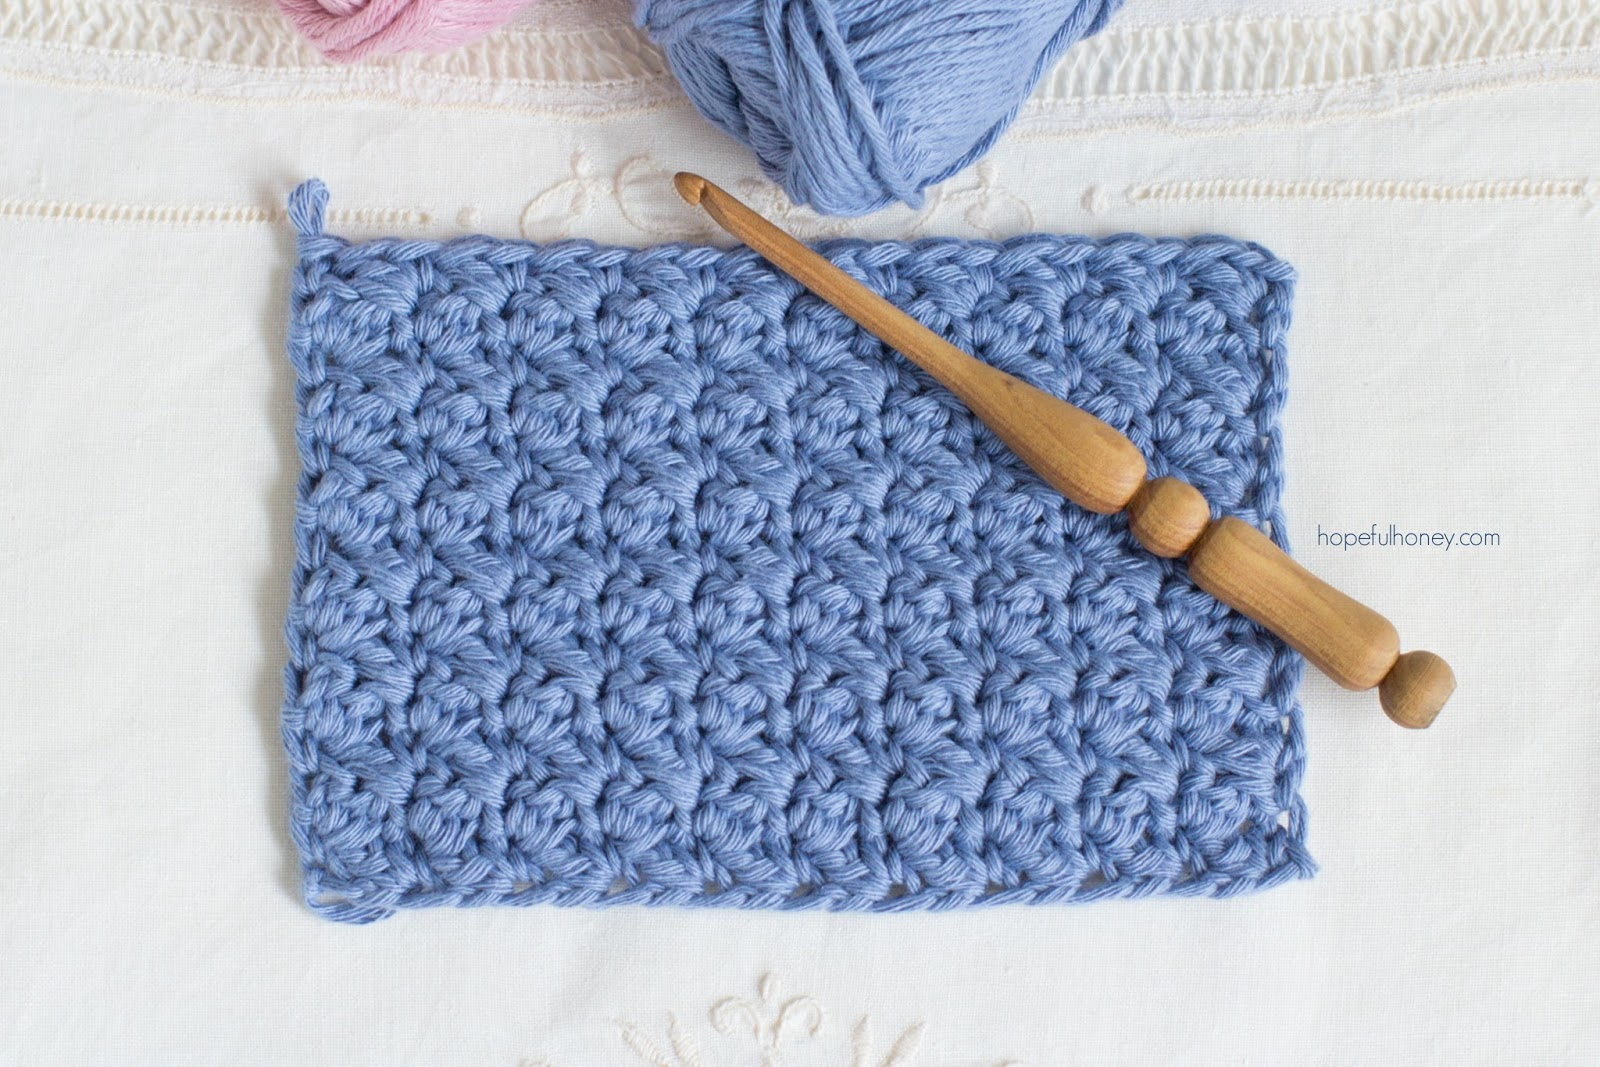 ... , Crochet, Create: How To: Crochet The Suzette Stitch - Easy Tutorial